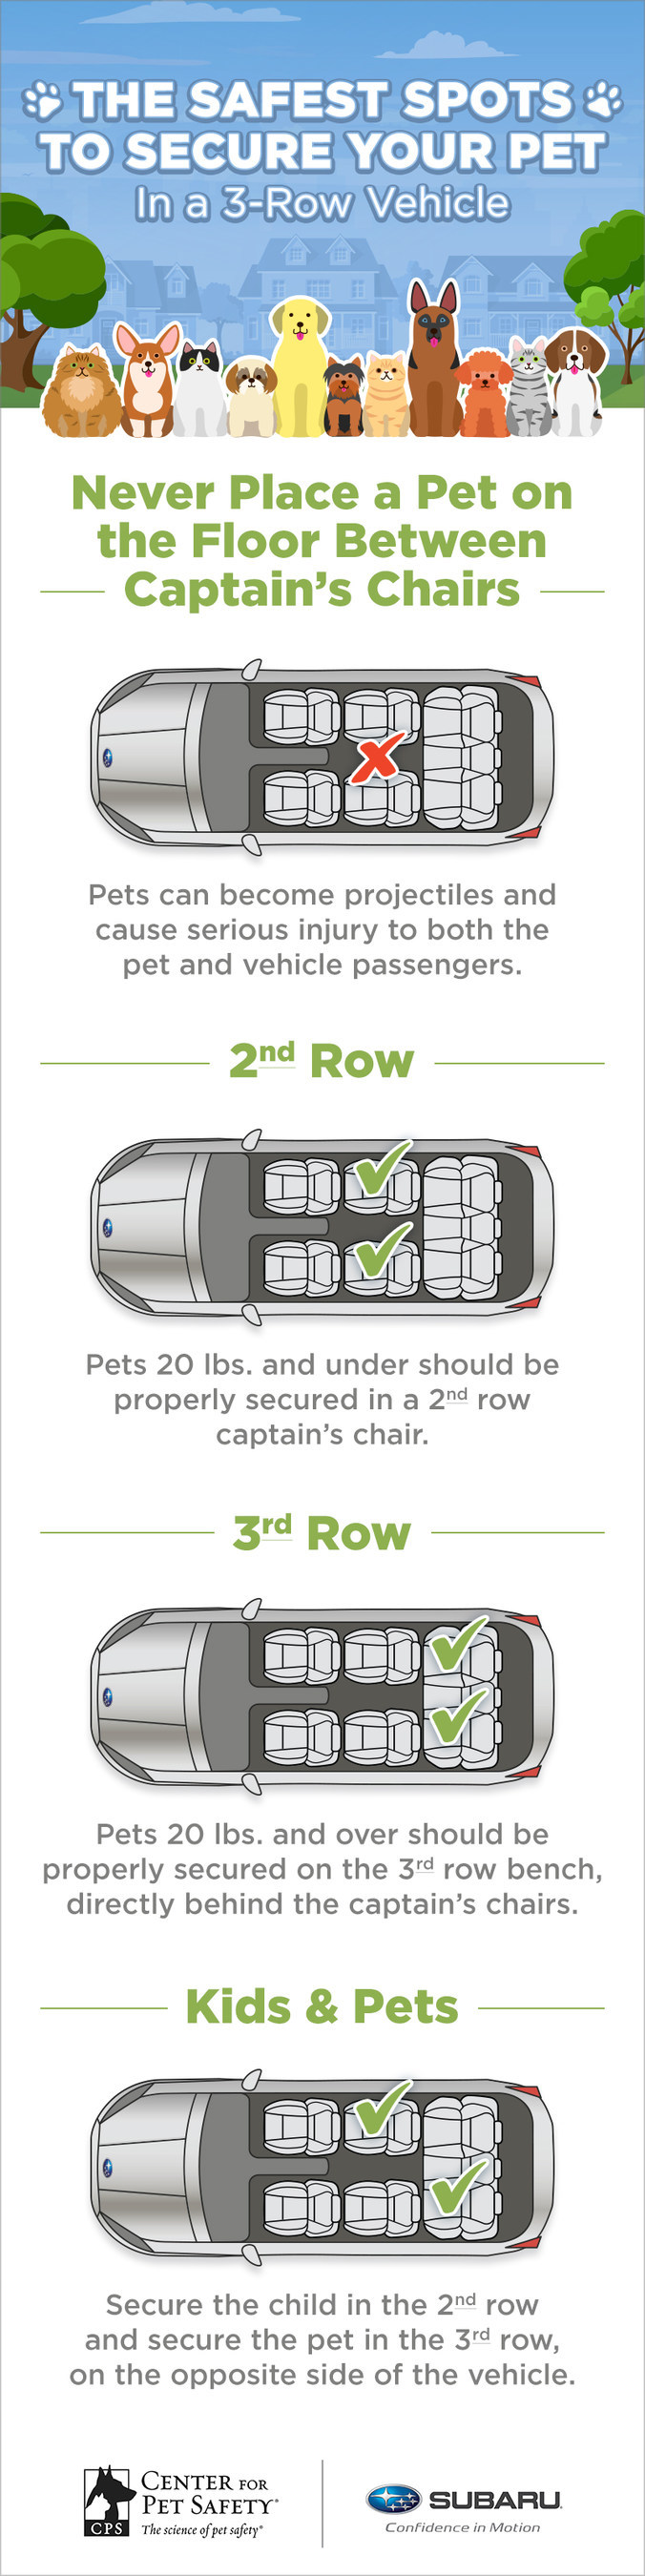 Subaru of America, Inc. and Center for Pet Safety Unveil the Safest and Most Dangerous Spots for Pets in an SUV